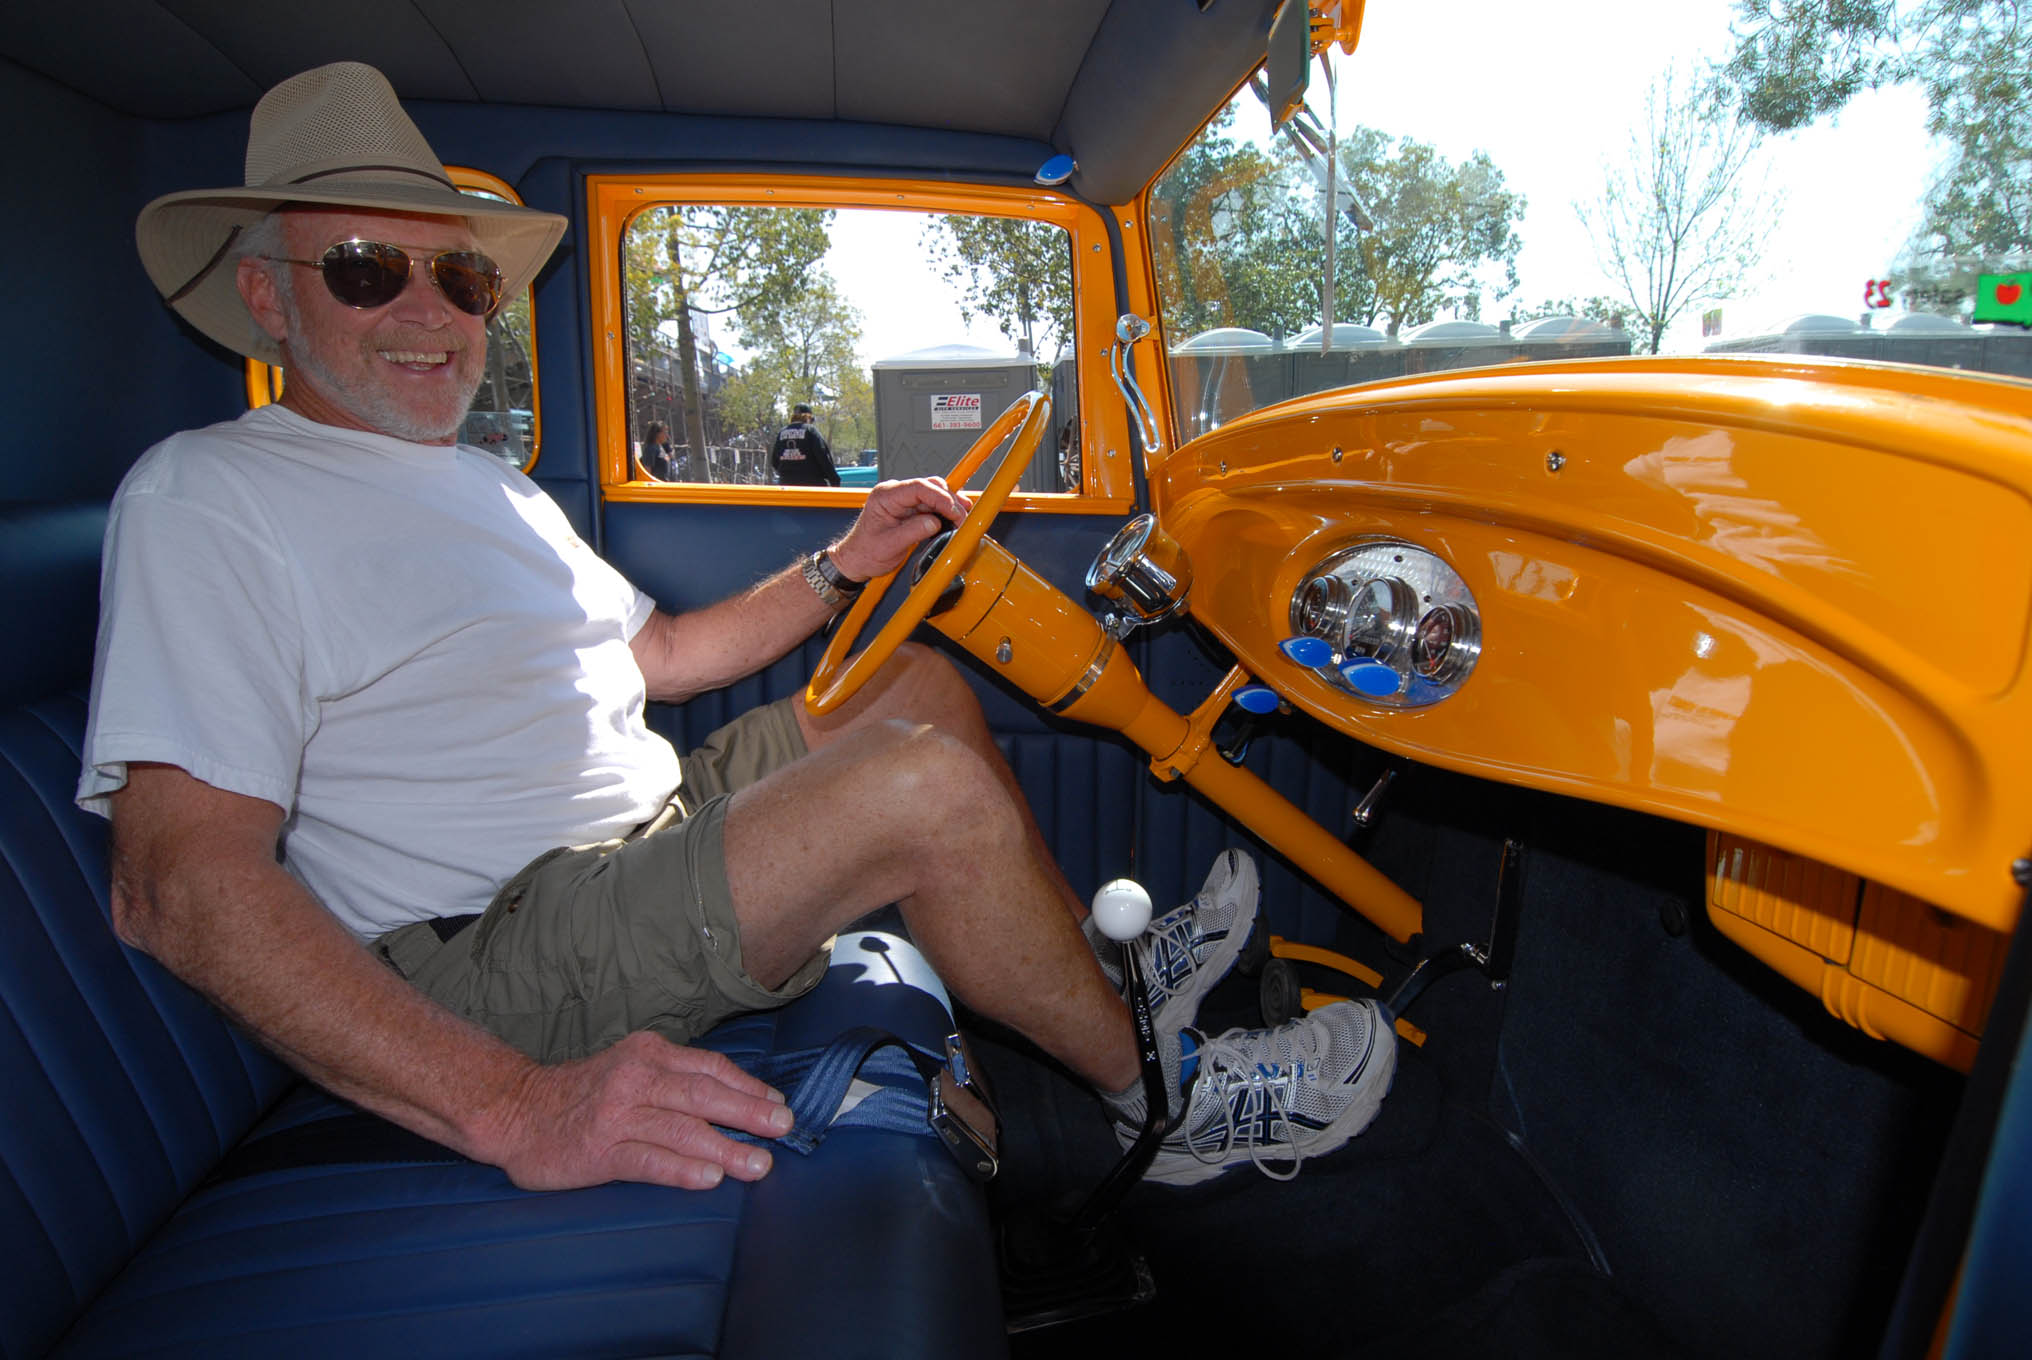 """It took Greg Powell five years and patch panels aplenty to transform a cancer-ridden, $1,000 shell into this beauty. """"I tried not to use anything new,"""" said Greg, listing a carbureted 327, close-ratio Muncie, Ford 9-inch, and the same heater that's made Wyoming winters tolerable since he installed the box in his first car, a Model A purchased at age 16—51 birthdays ago."""